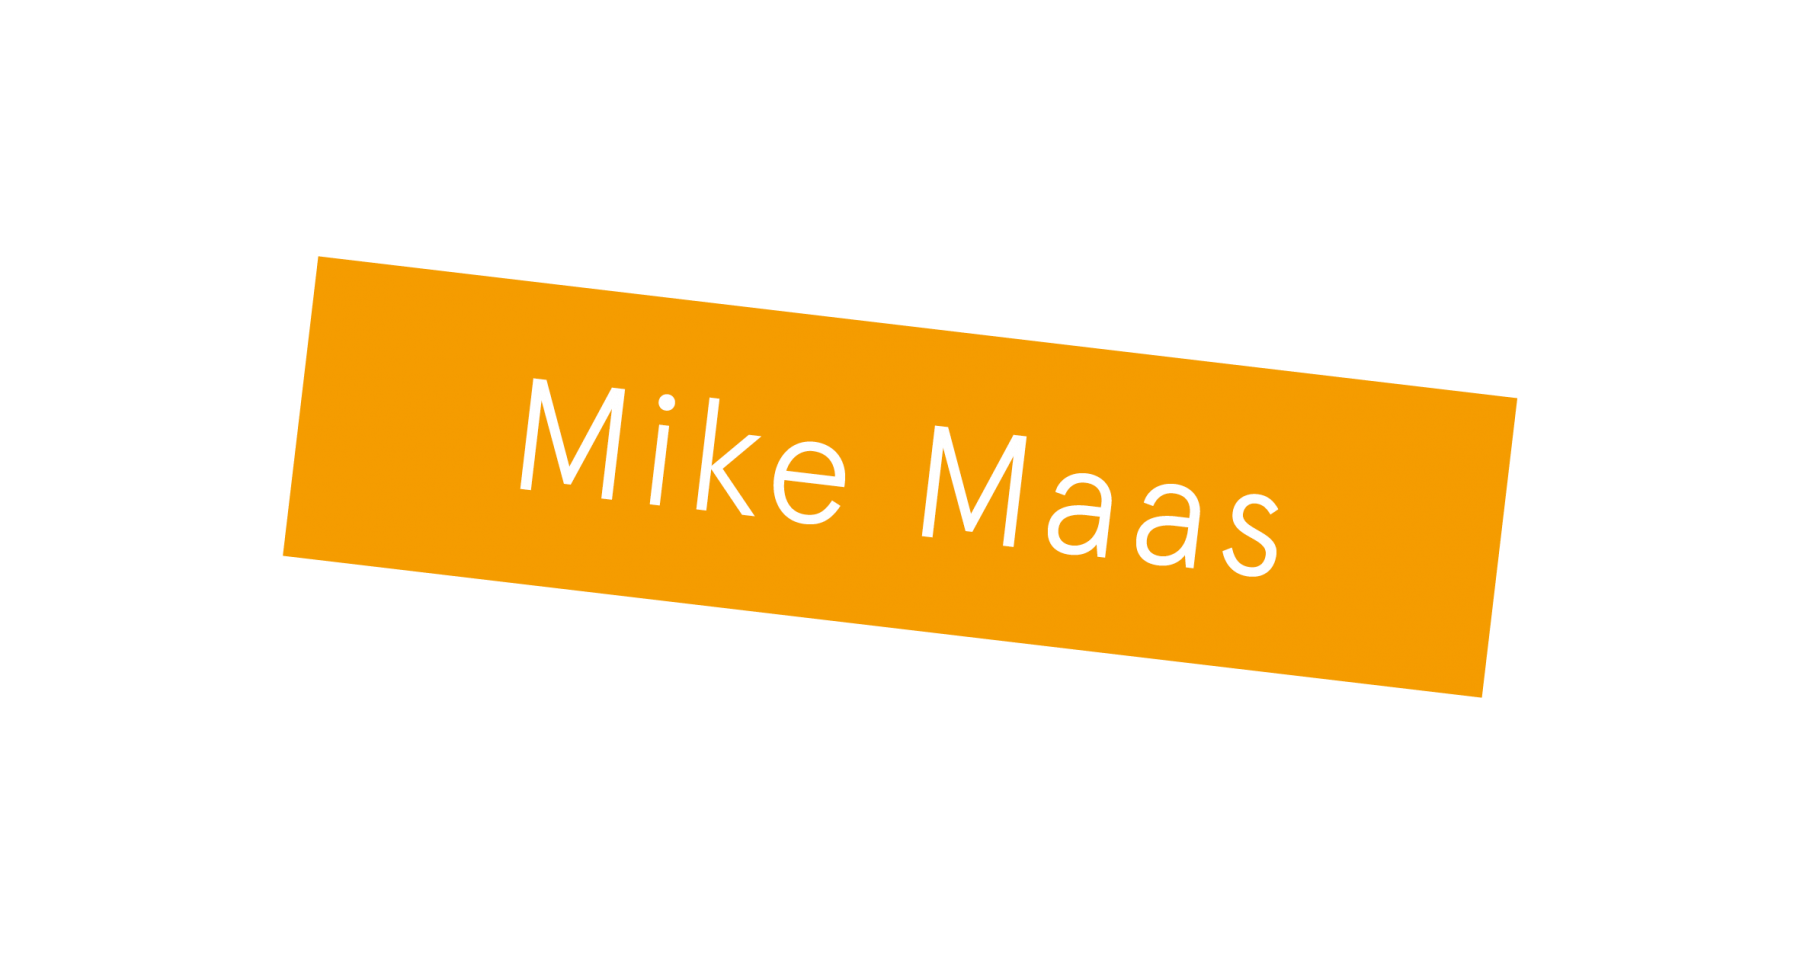 Lindau_Mike Maas